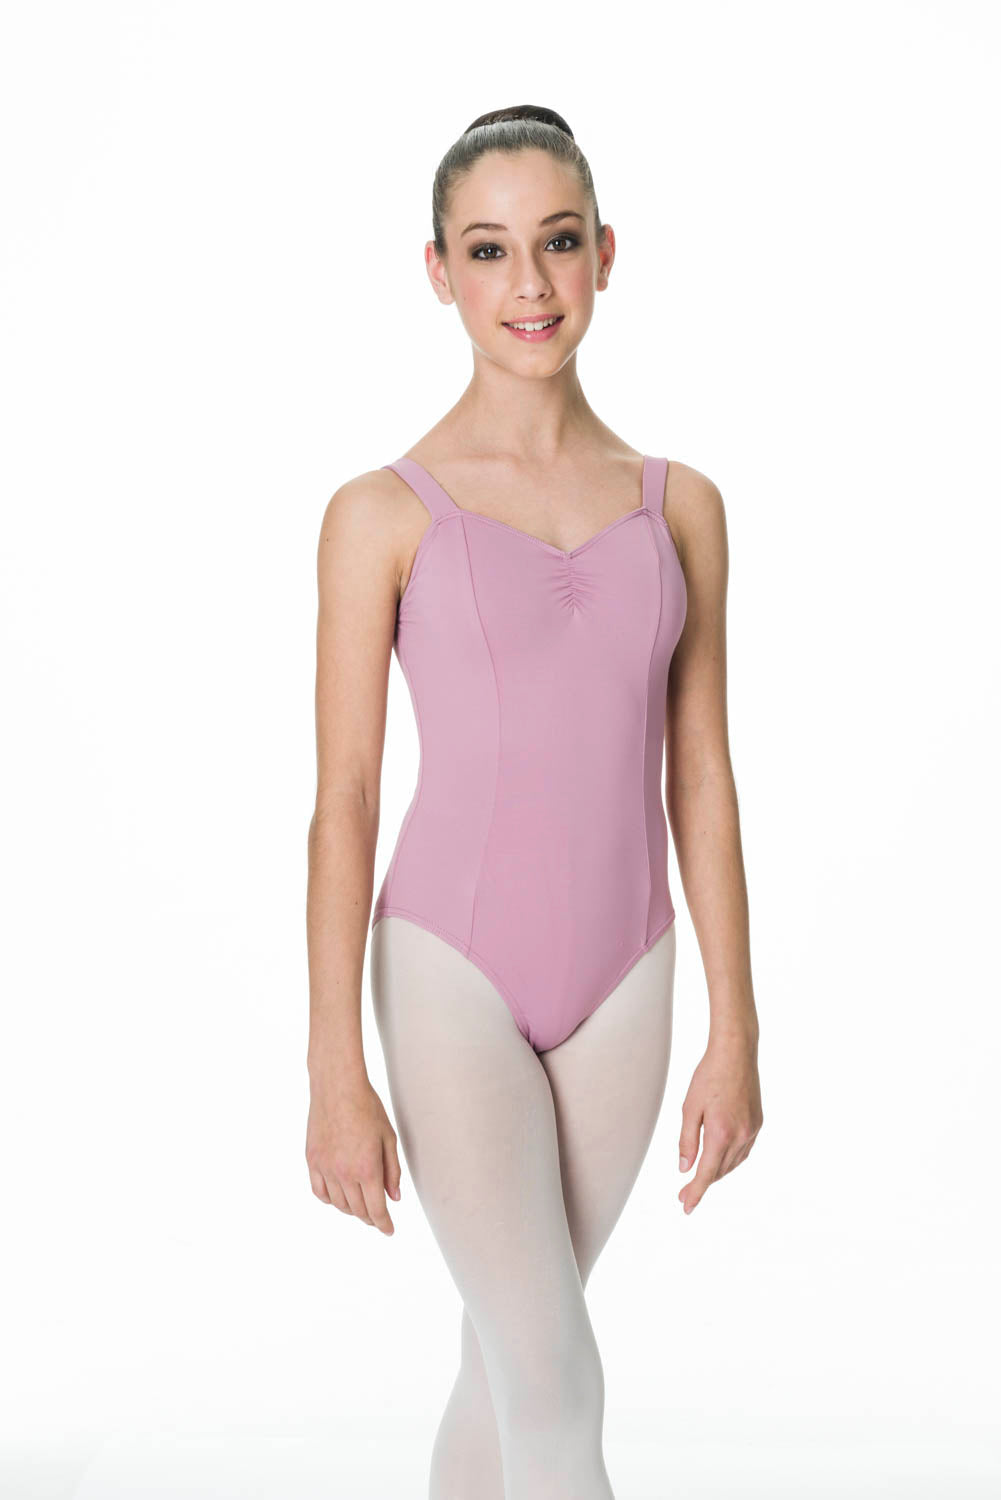 STUDIO 7 WIDE STRAP LEOTARD ADULT- TAL03